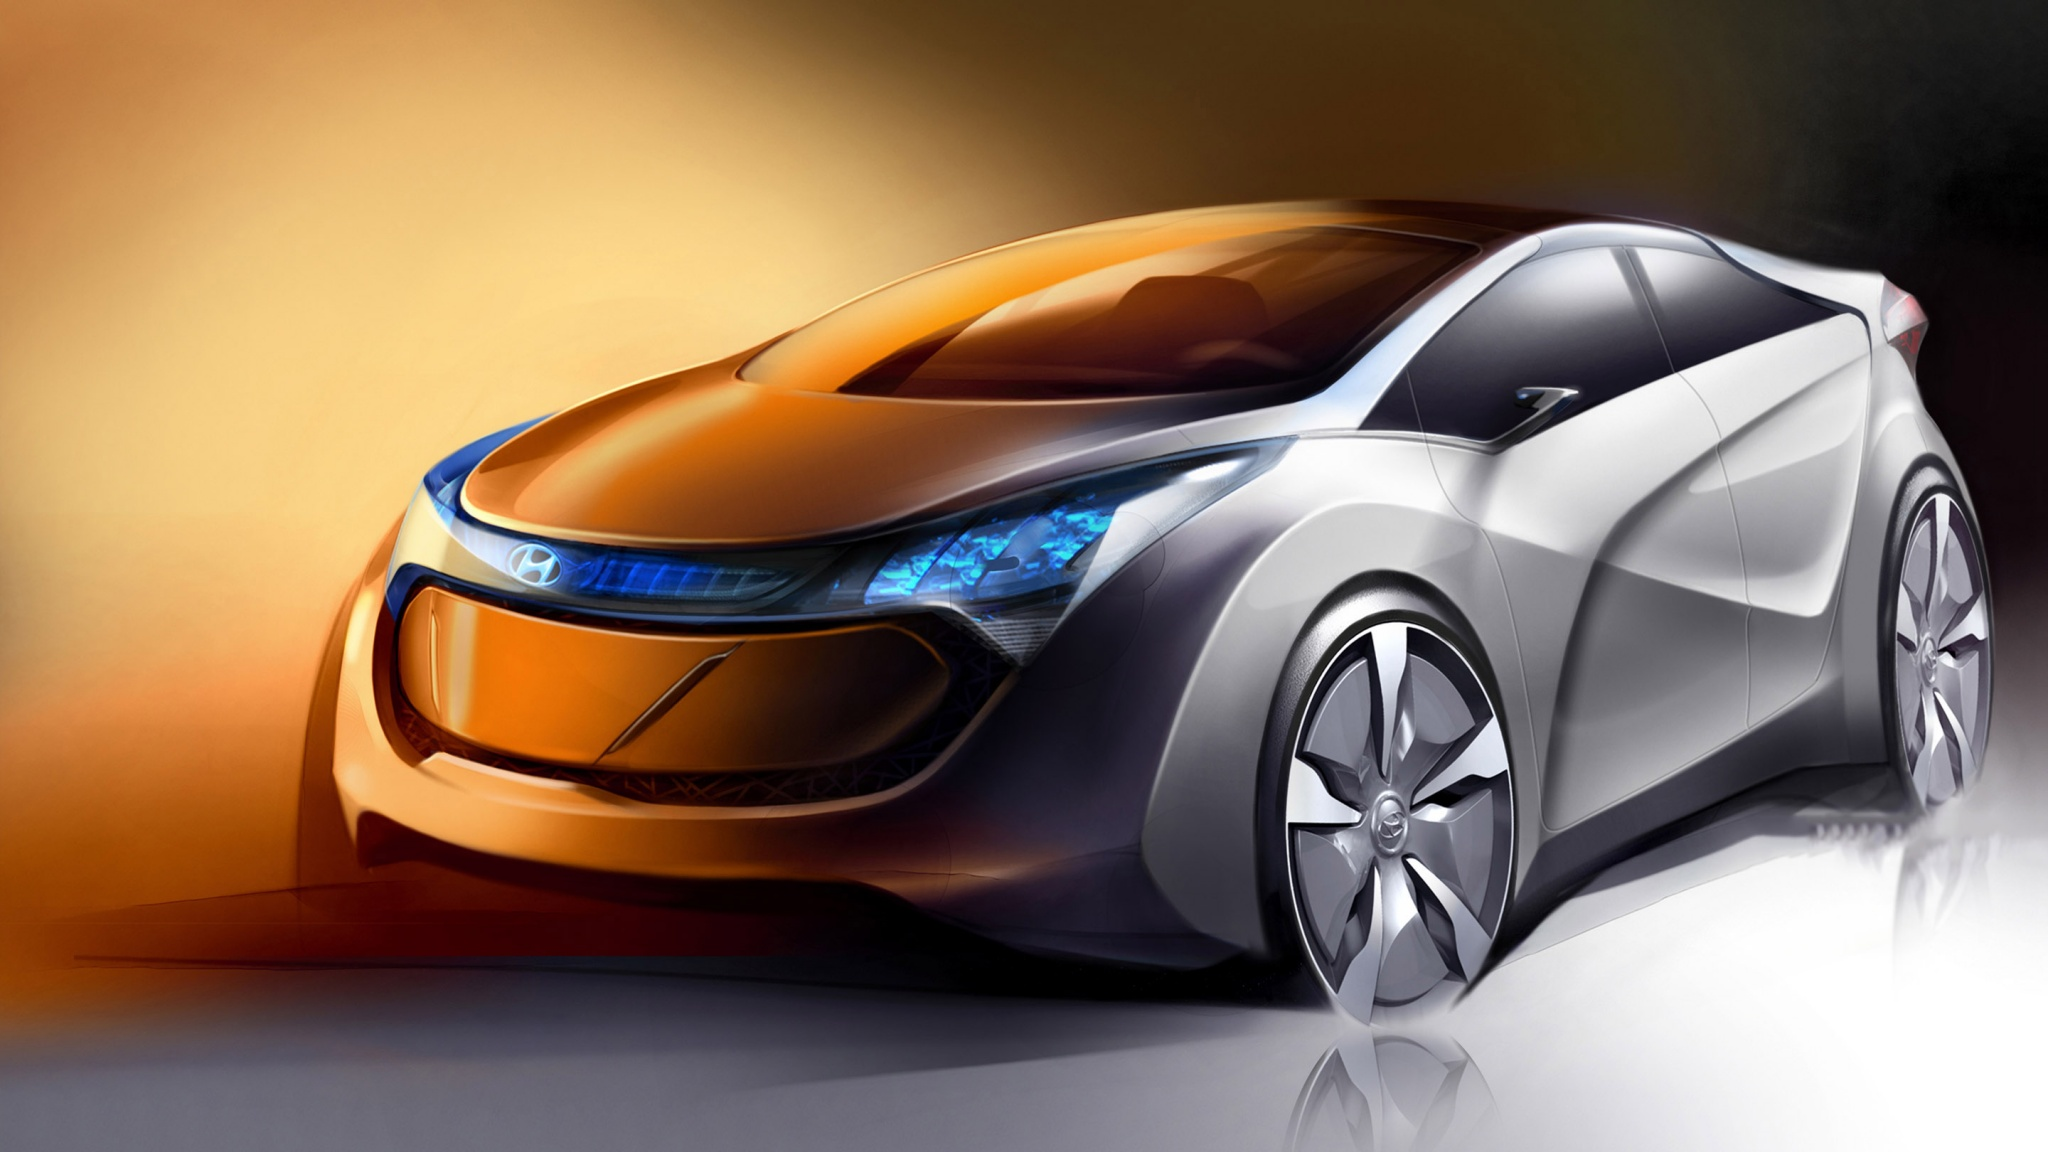 Cars On Line >> Hyundai Future Cars Line-Up Until 2018 Wallpapers - 2048x1152 - 390537